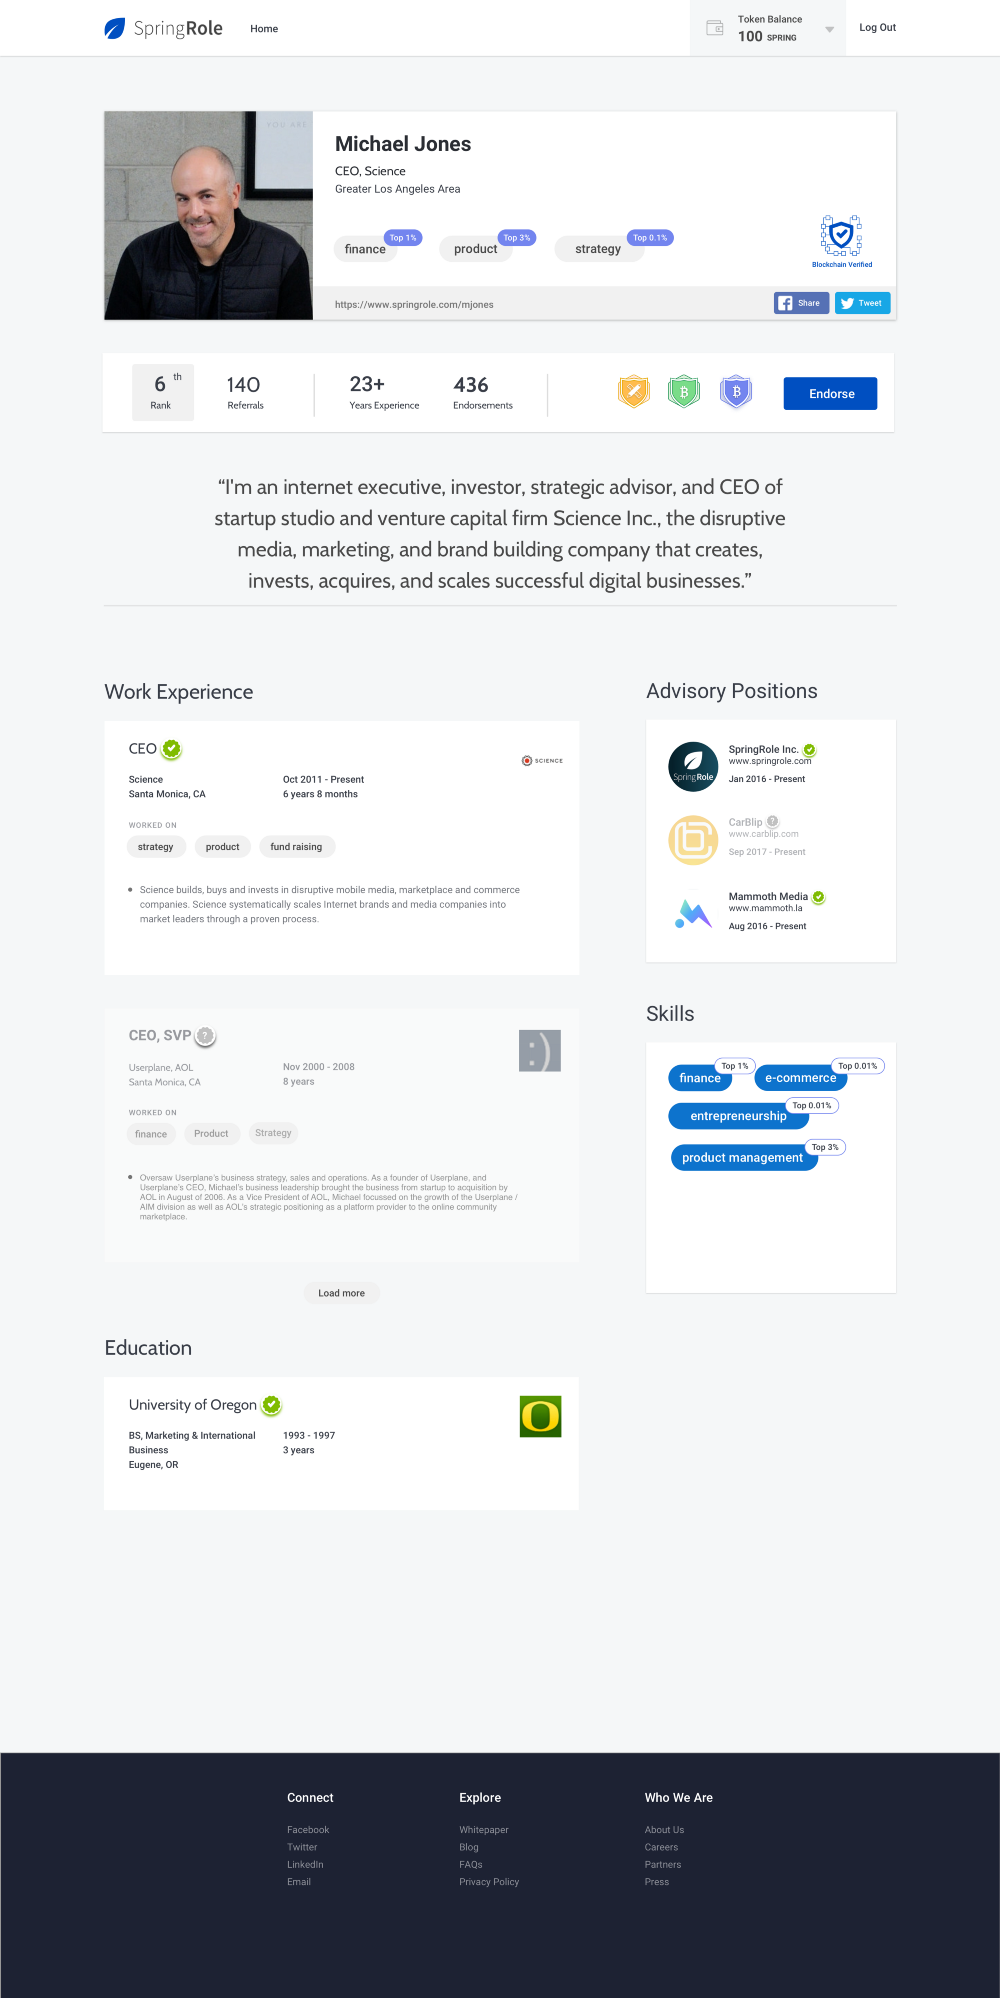 SpringRole Mockup - SpringRole: A Better Way to Build Credible Professional Profiles Powered by Blockchain